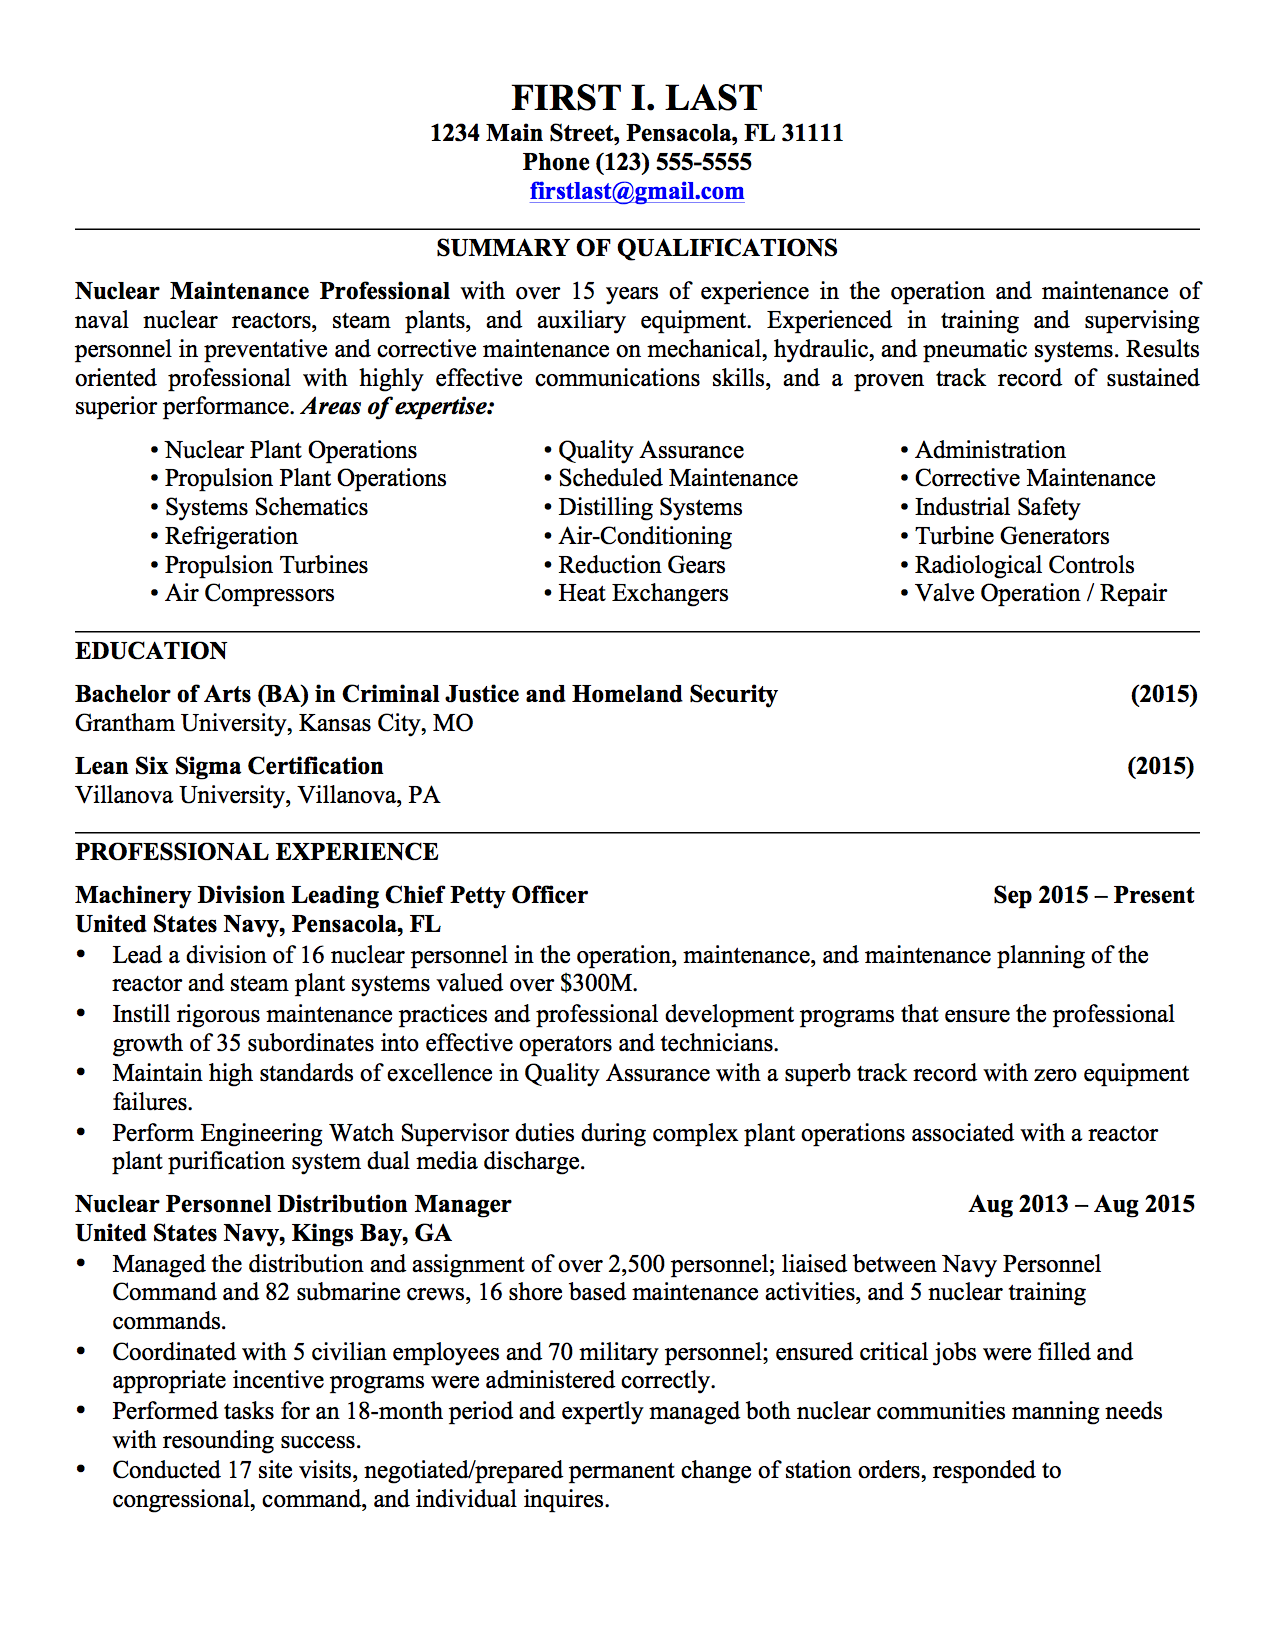 Shutdown Computer Resume Bios Setup Resume Examples Technical Technical  Information Technology It Resume Examples Lvn Resume